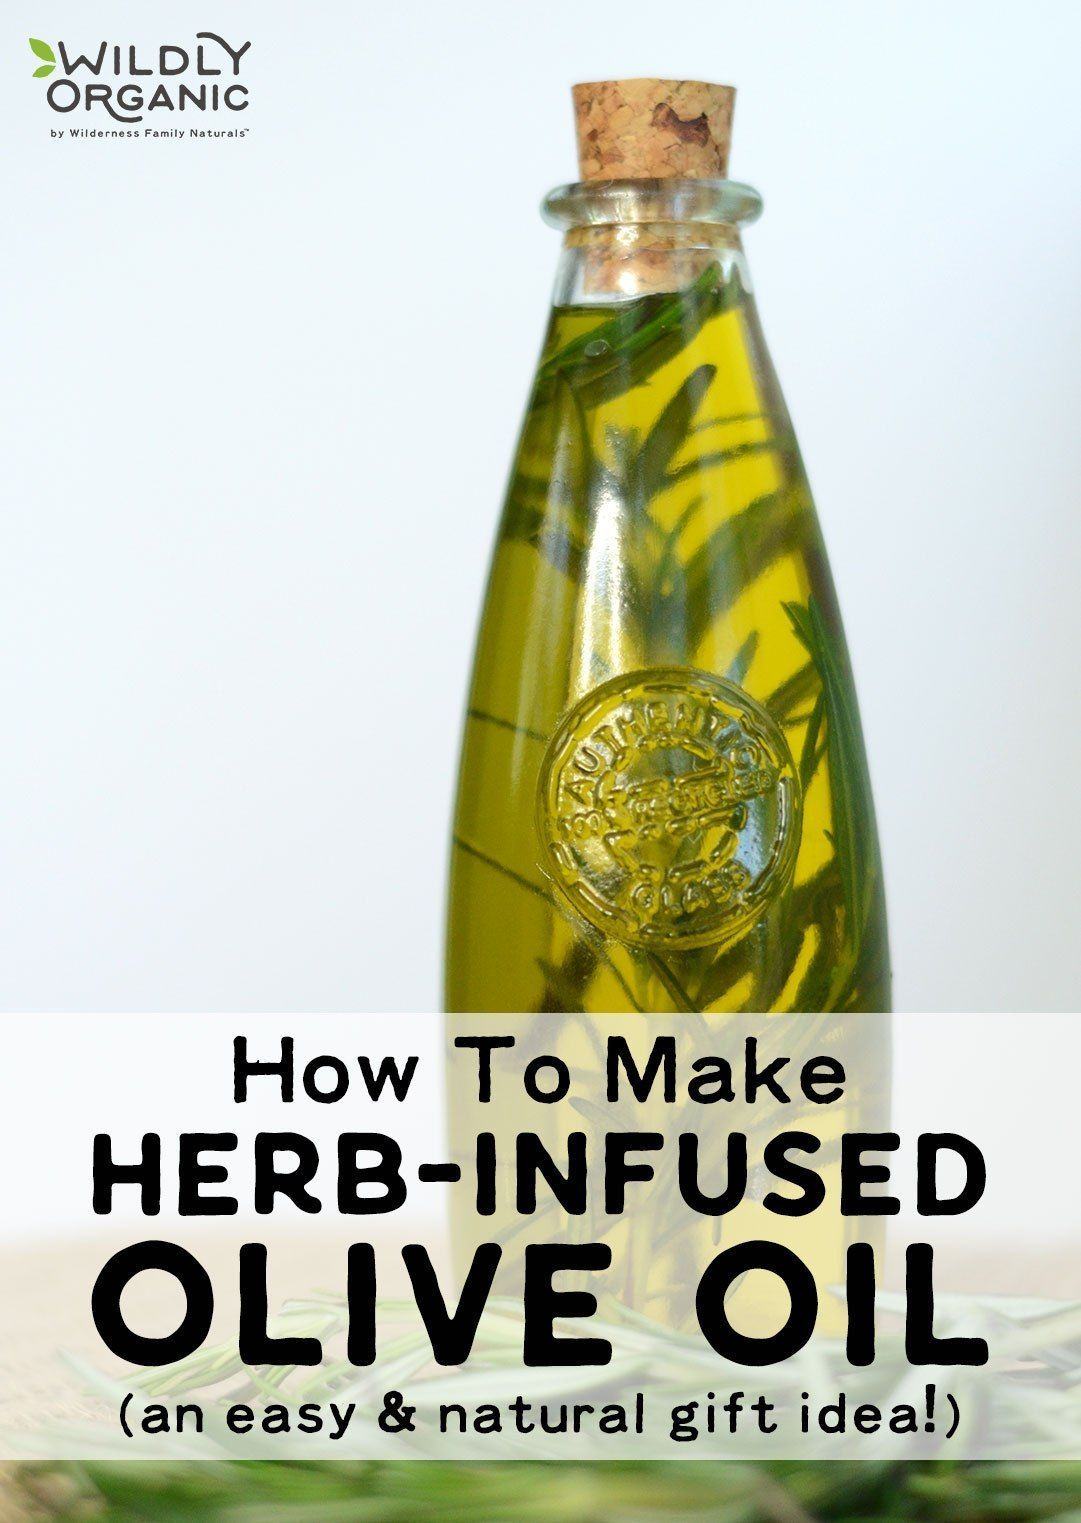 How To Make HerbInfused Olive Oil (an easy & natural gift